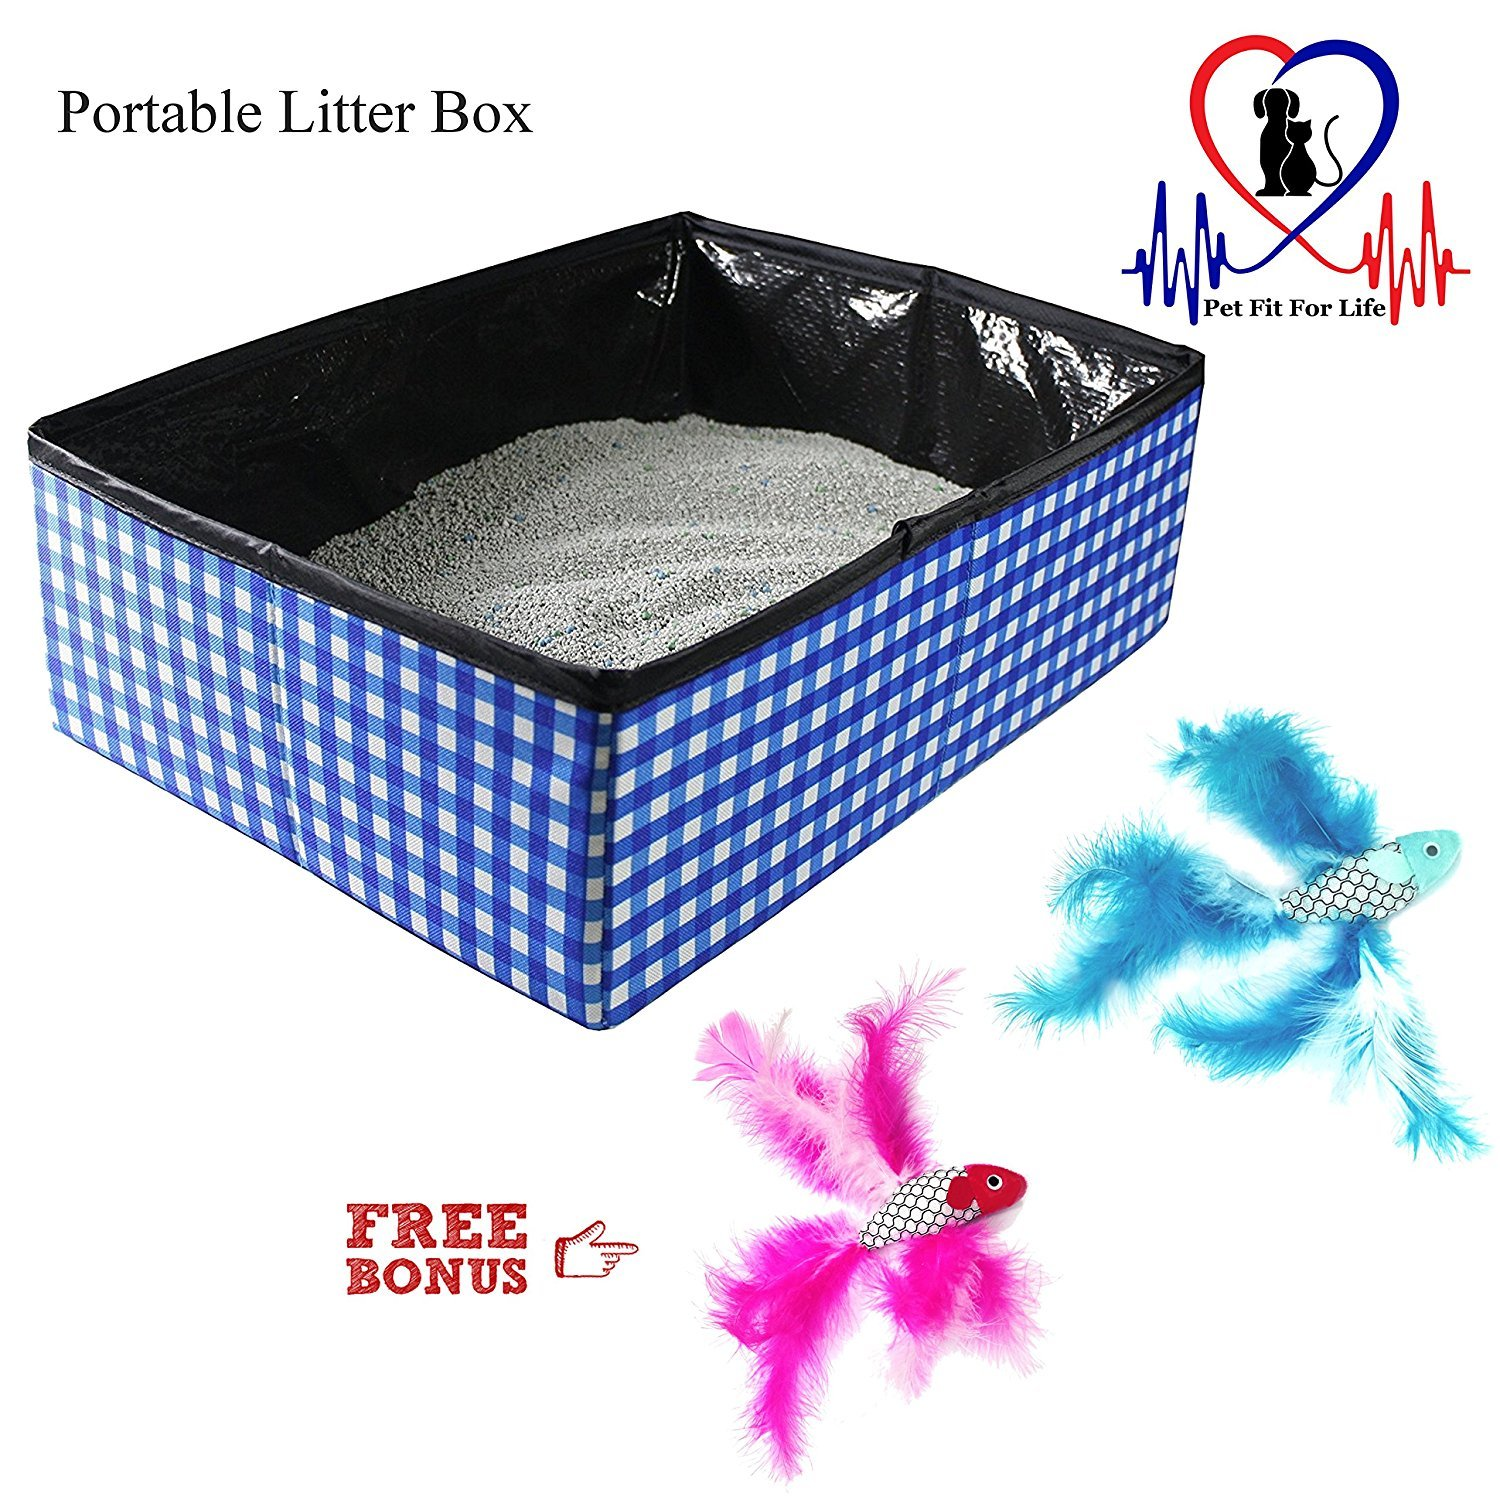 Pet Fit for Life Collapsible Portable Litter Box and Bonus Pet Fit for Life Collapsible Water Bowl